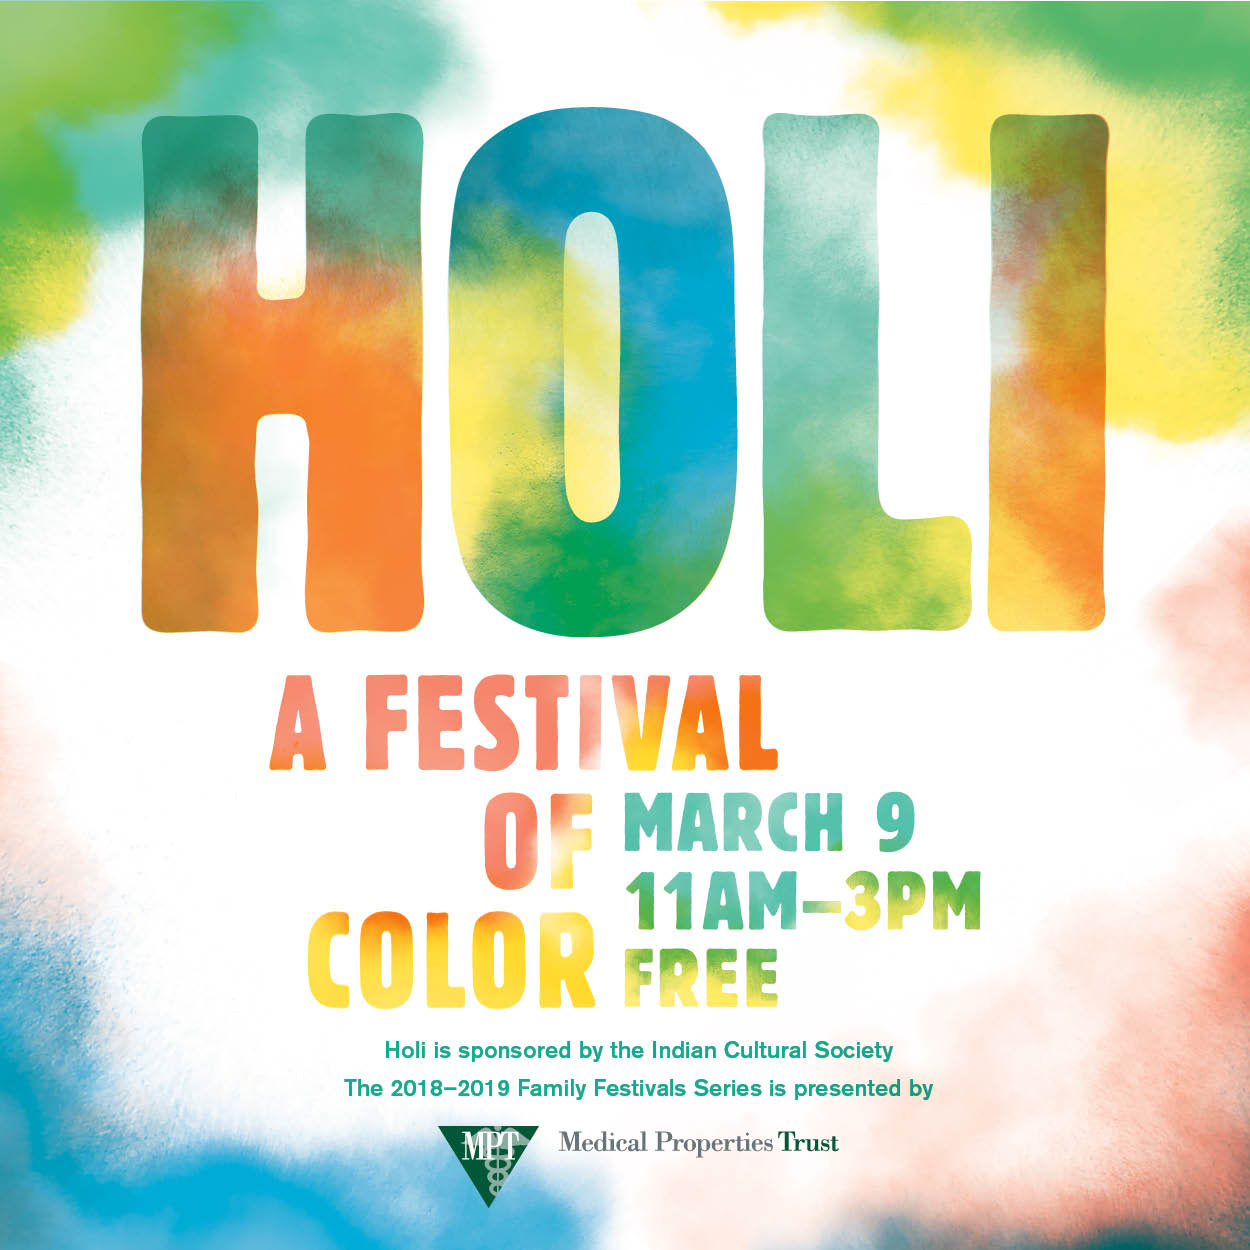 5 Things to Do at Holi: A Festival of Color